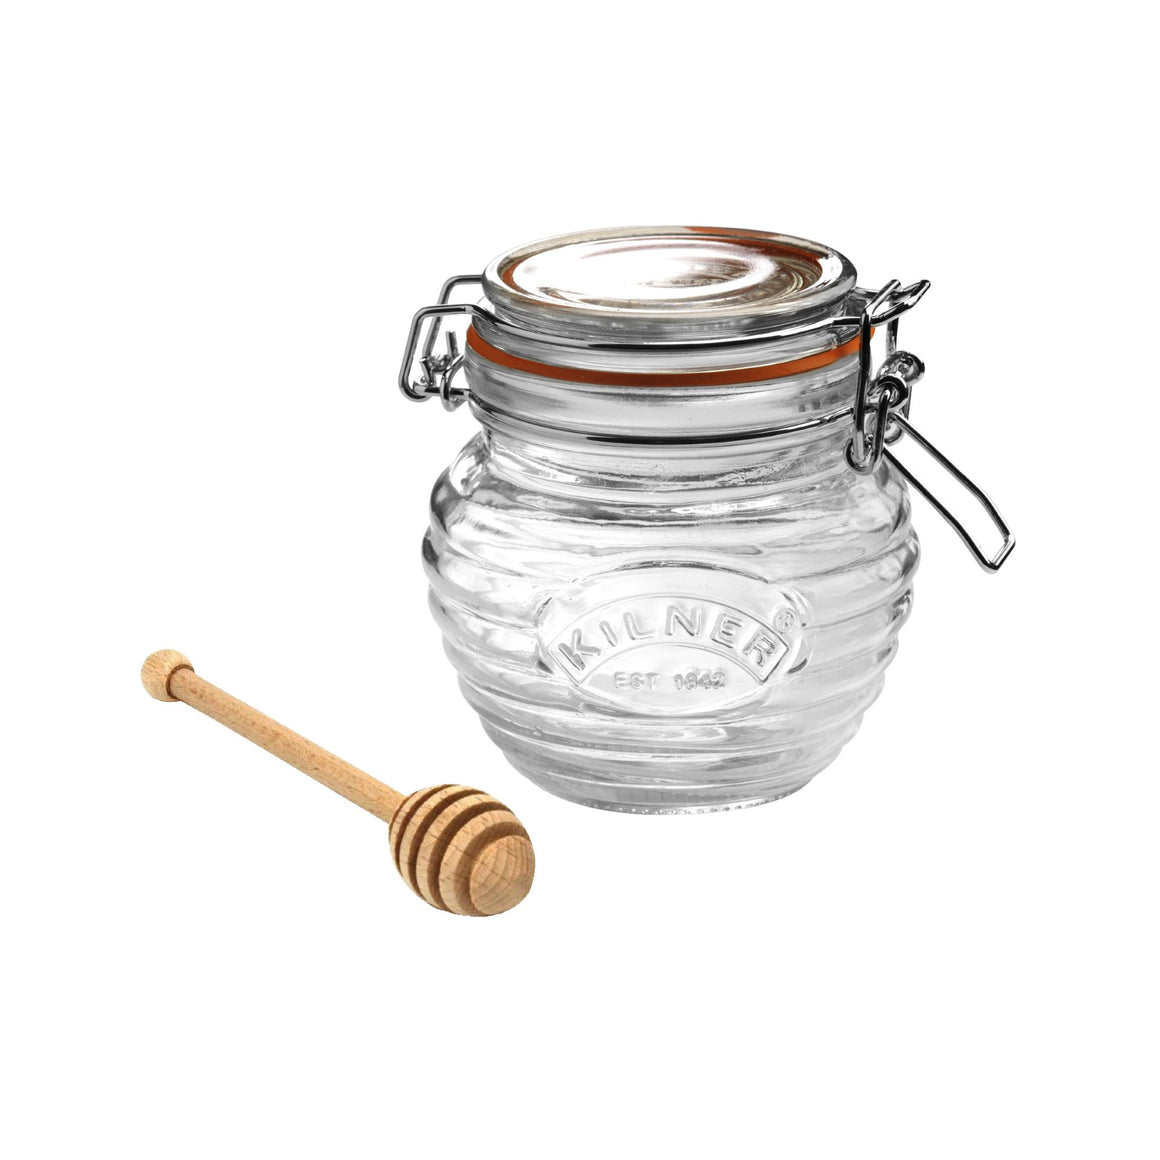 Kilner - 0.4Lt Honey Pot with Dipper